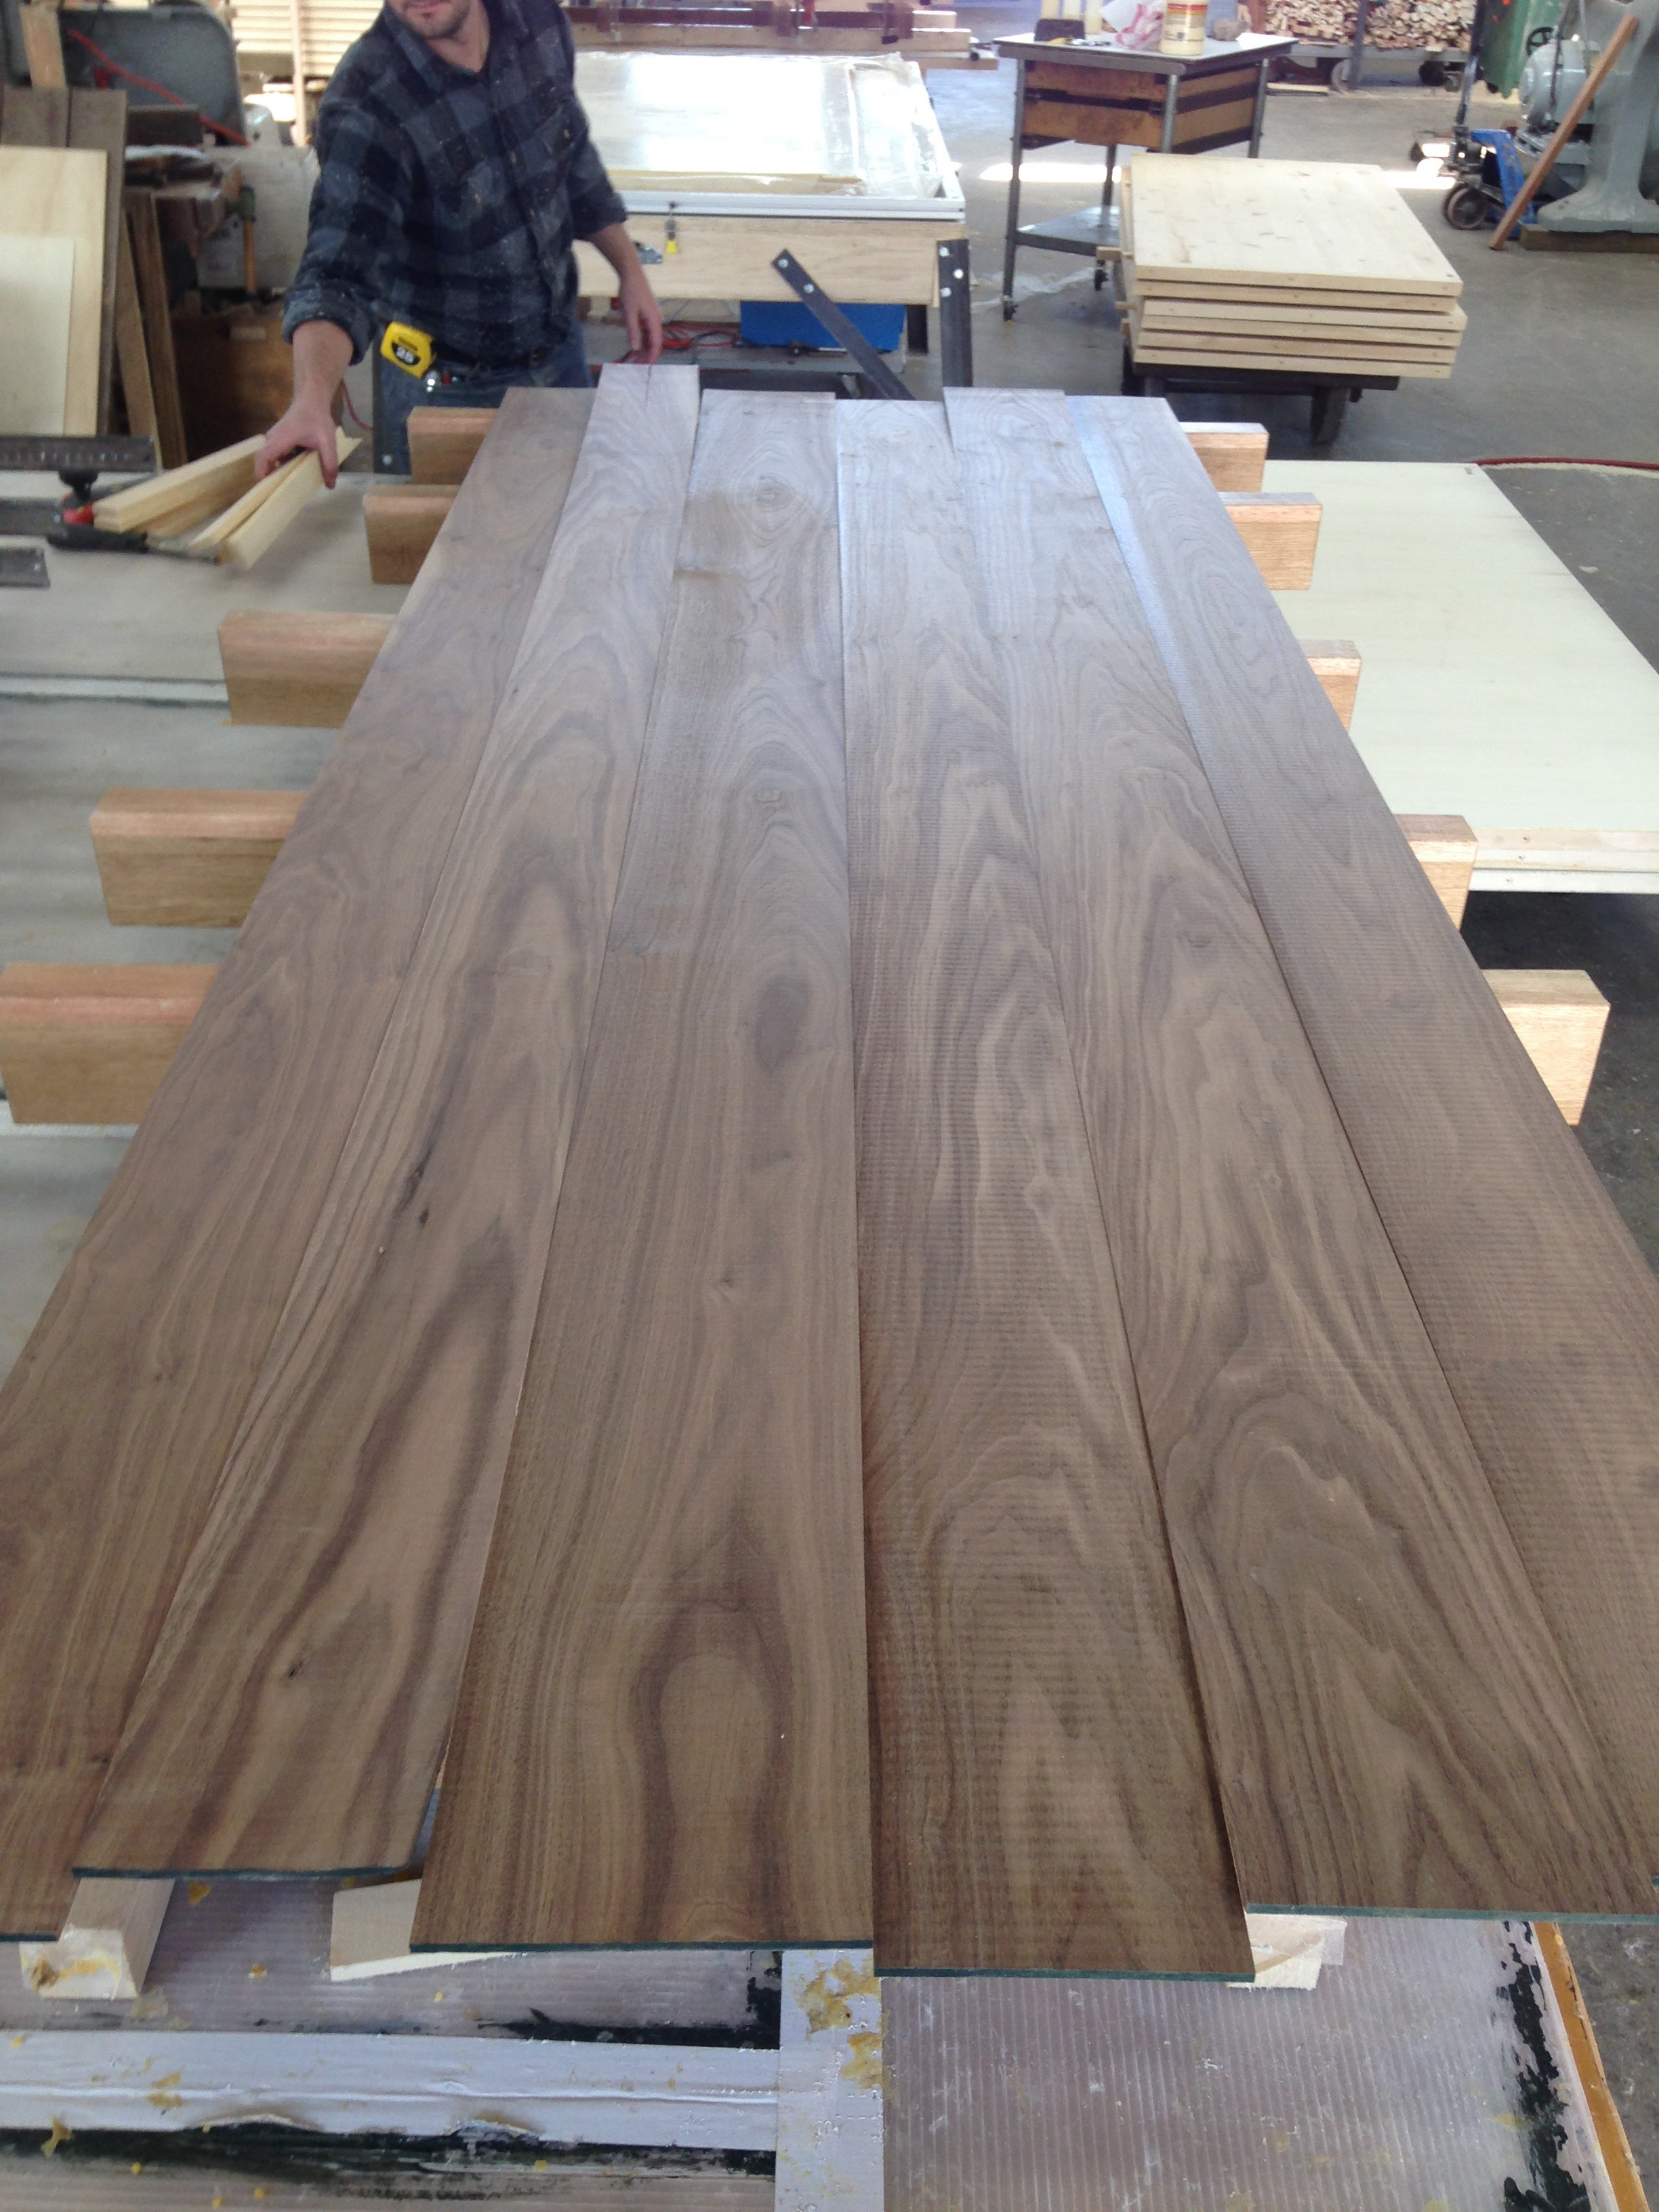 Premium American black walnut mostly goes to veneer mills.  Just sourcing this 100% heartwood free of pin knots in board stock took a bit of looking.